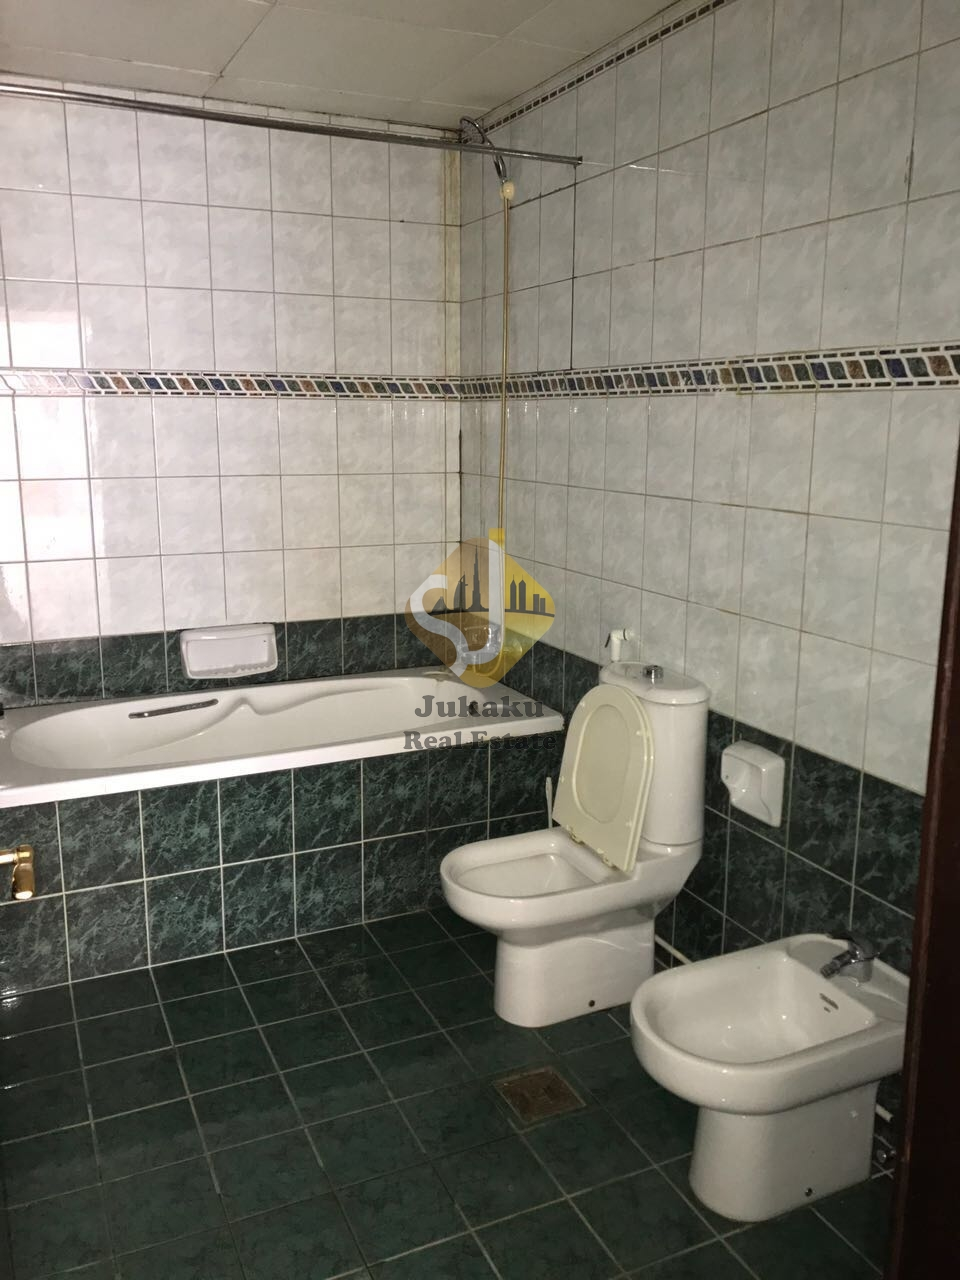 Chiller Free 2 Br With Huge In Size For 95k In Bur Dubai